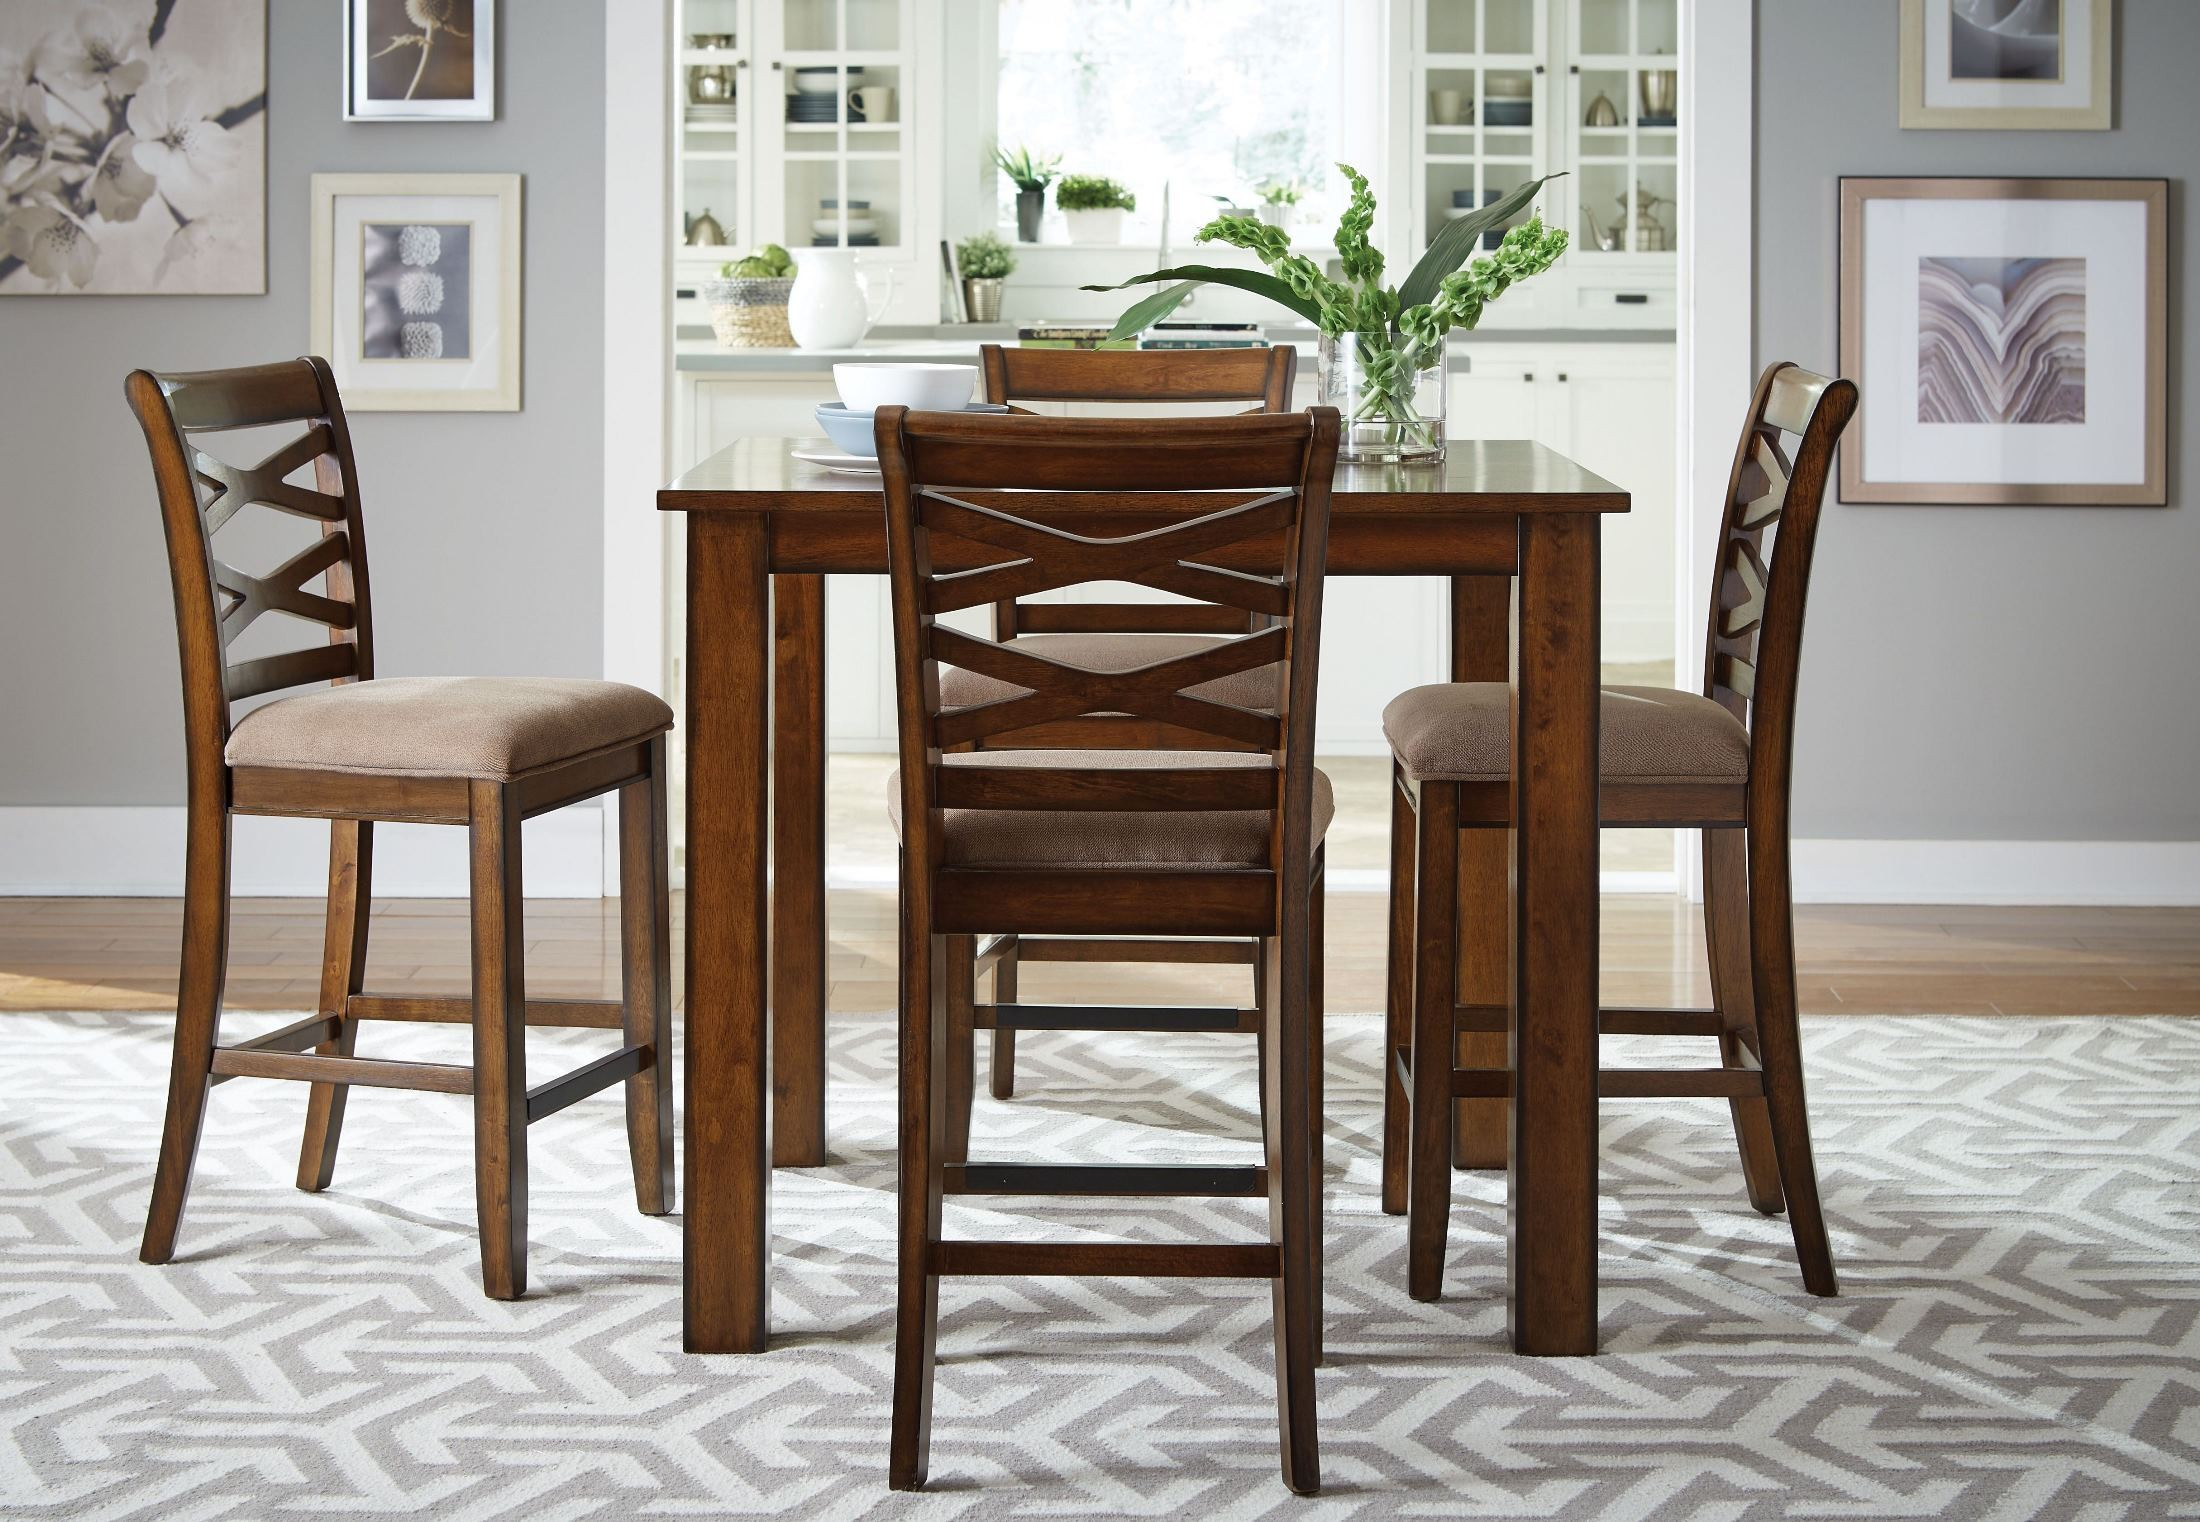 Redondo Vibrant Cherry 5 Piece Counter Height Dining Room